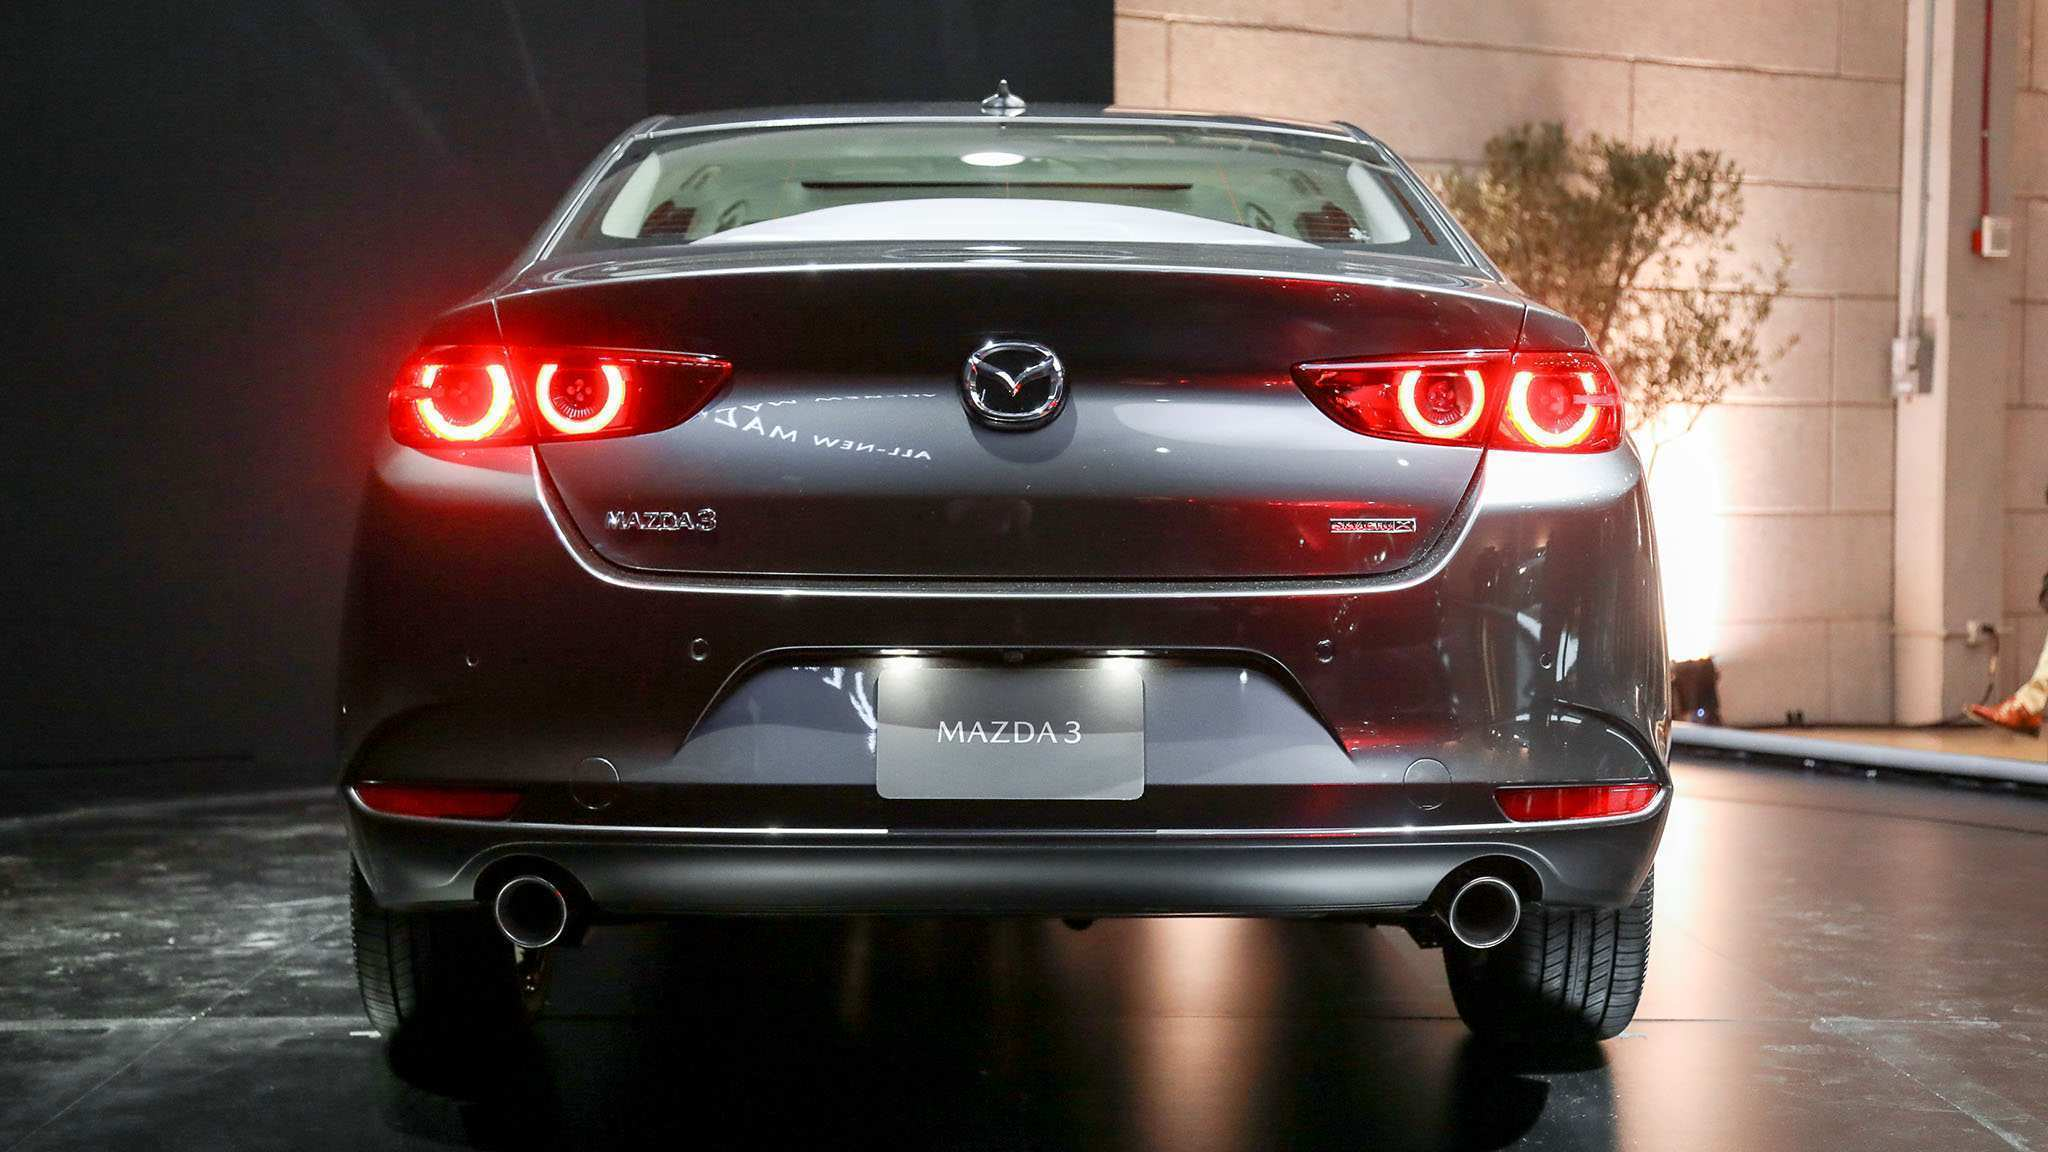 34 New 2019 Mazda 3 Sedan Specs And Review